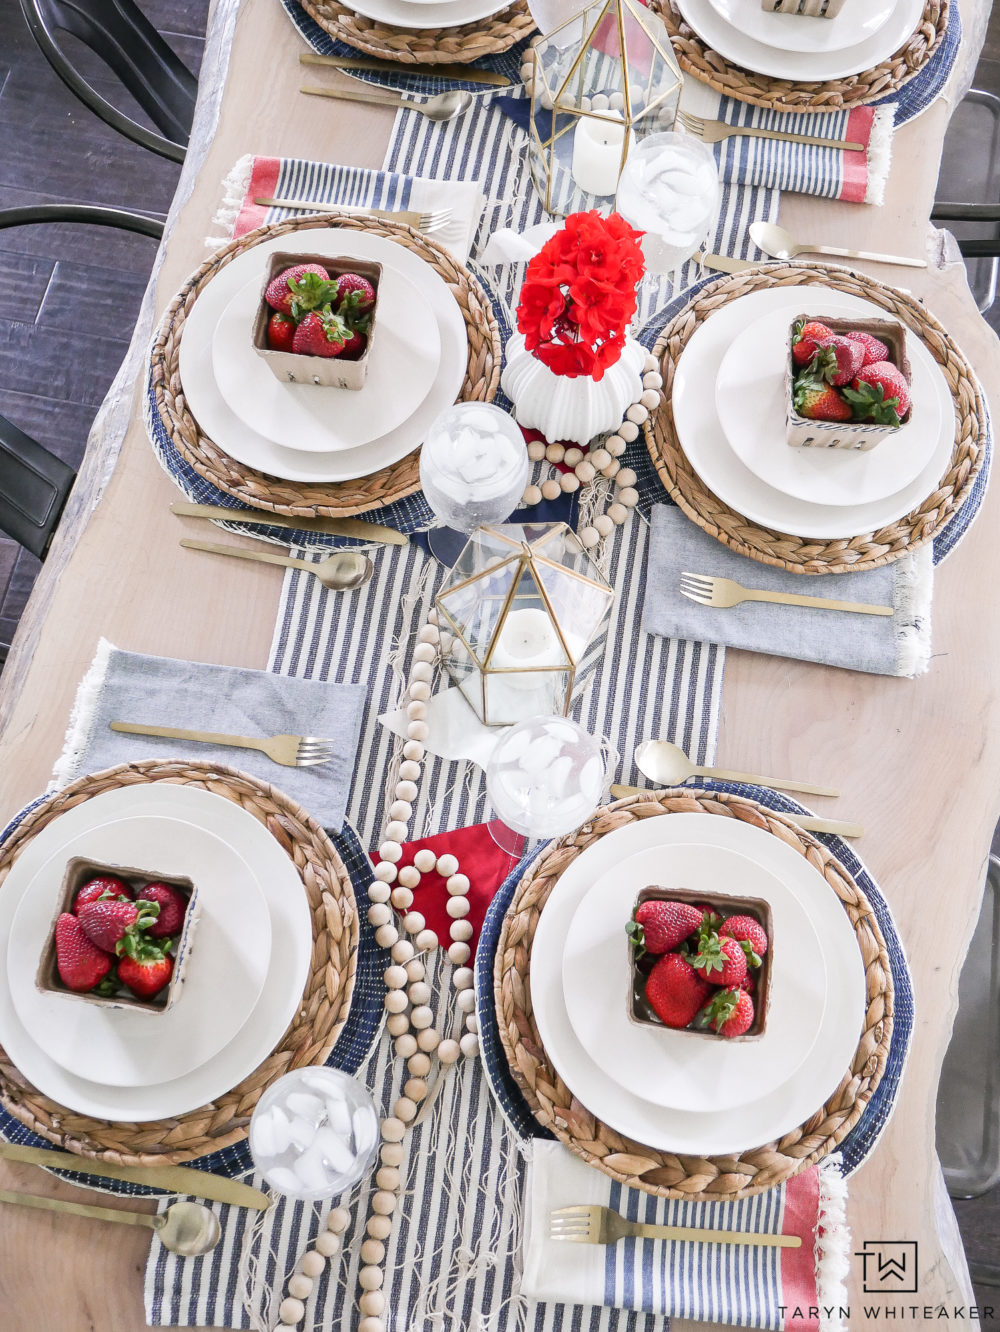 Gather insiration for yoru next July 4th party with this Coastal Fourth of July table decor. Love the beachy look mixed with red, white and blue!